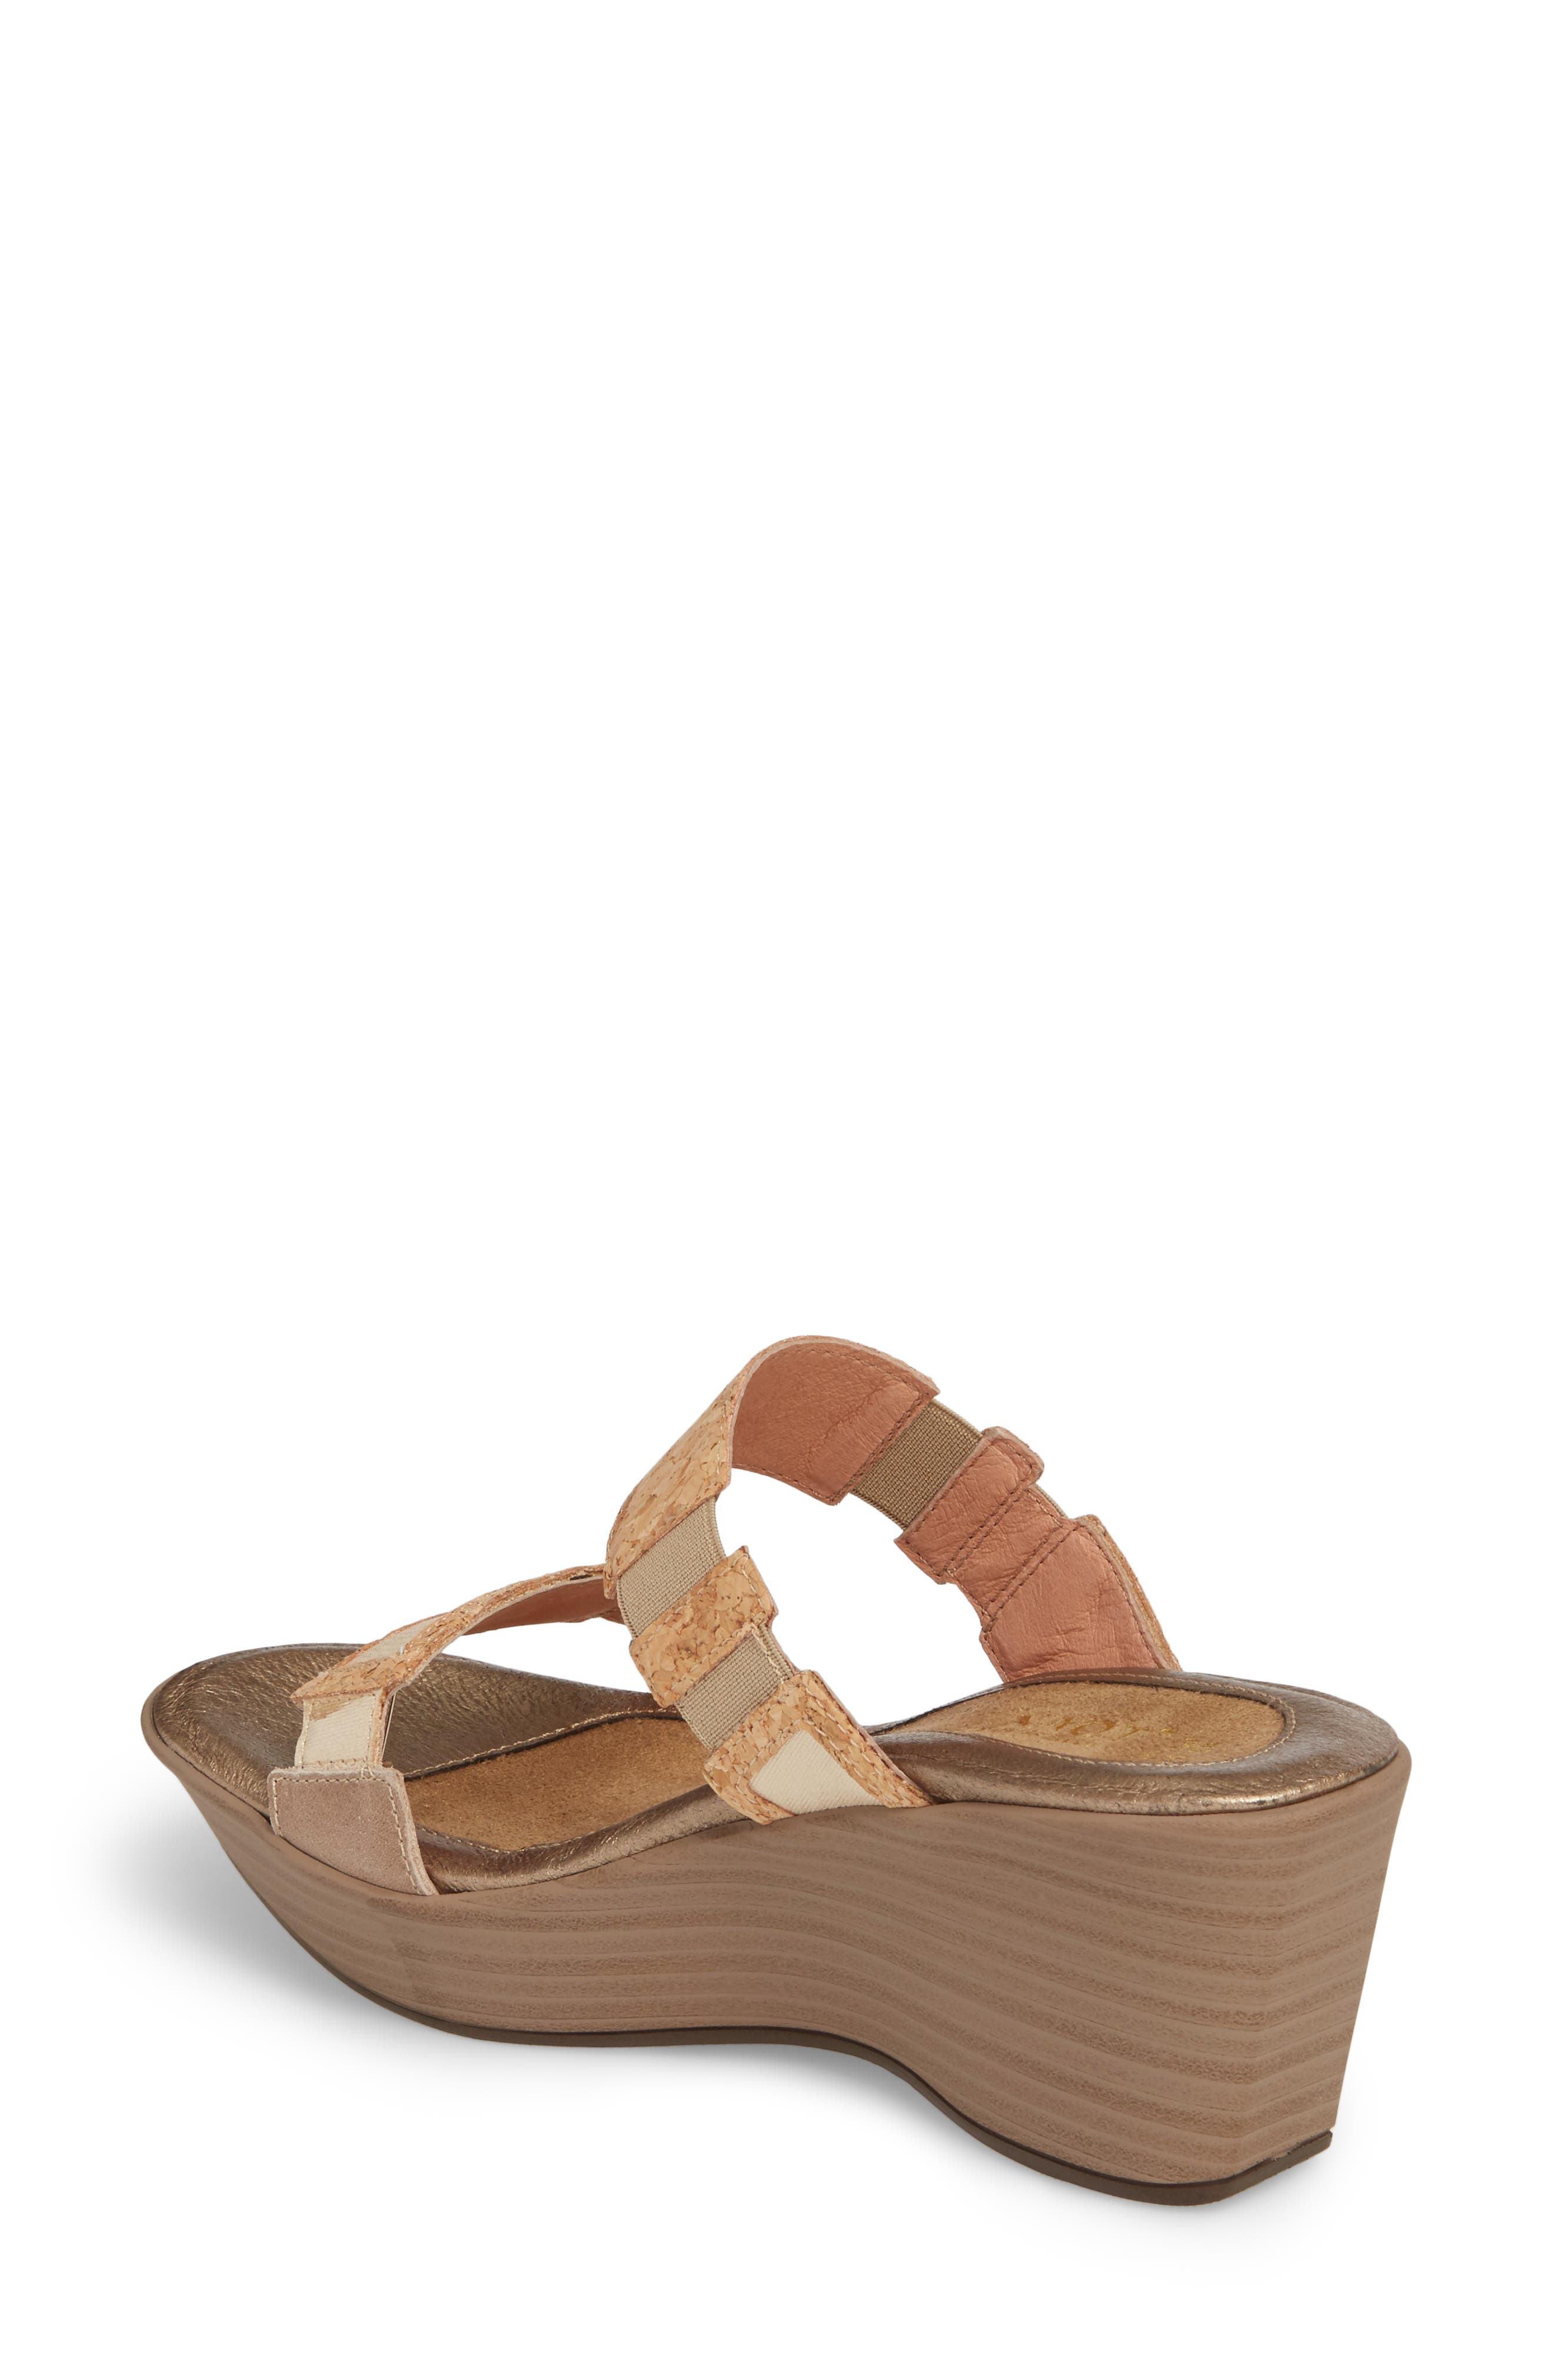 'Treasure' Sandal,                             Alternate thumbnail 2, color,                             Cork Leather